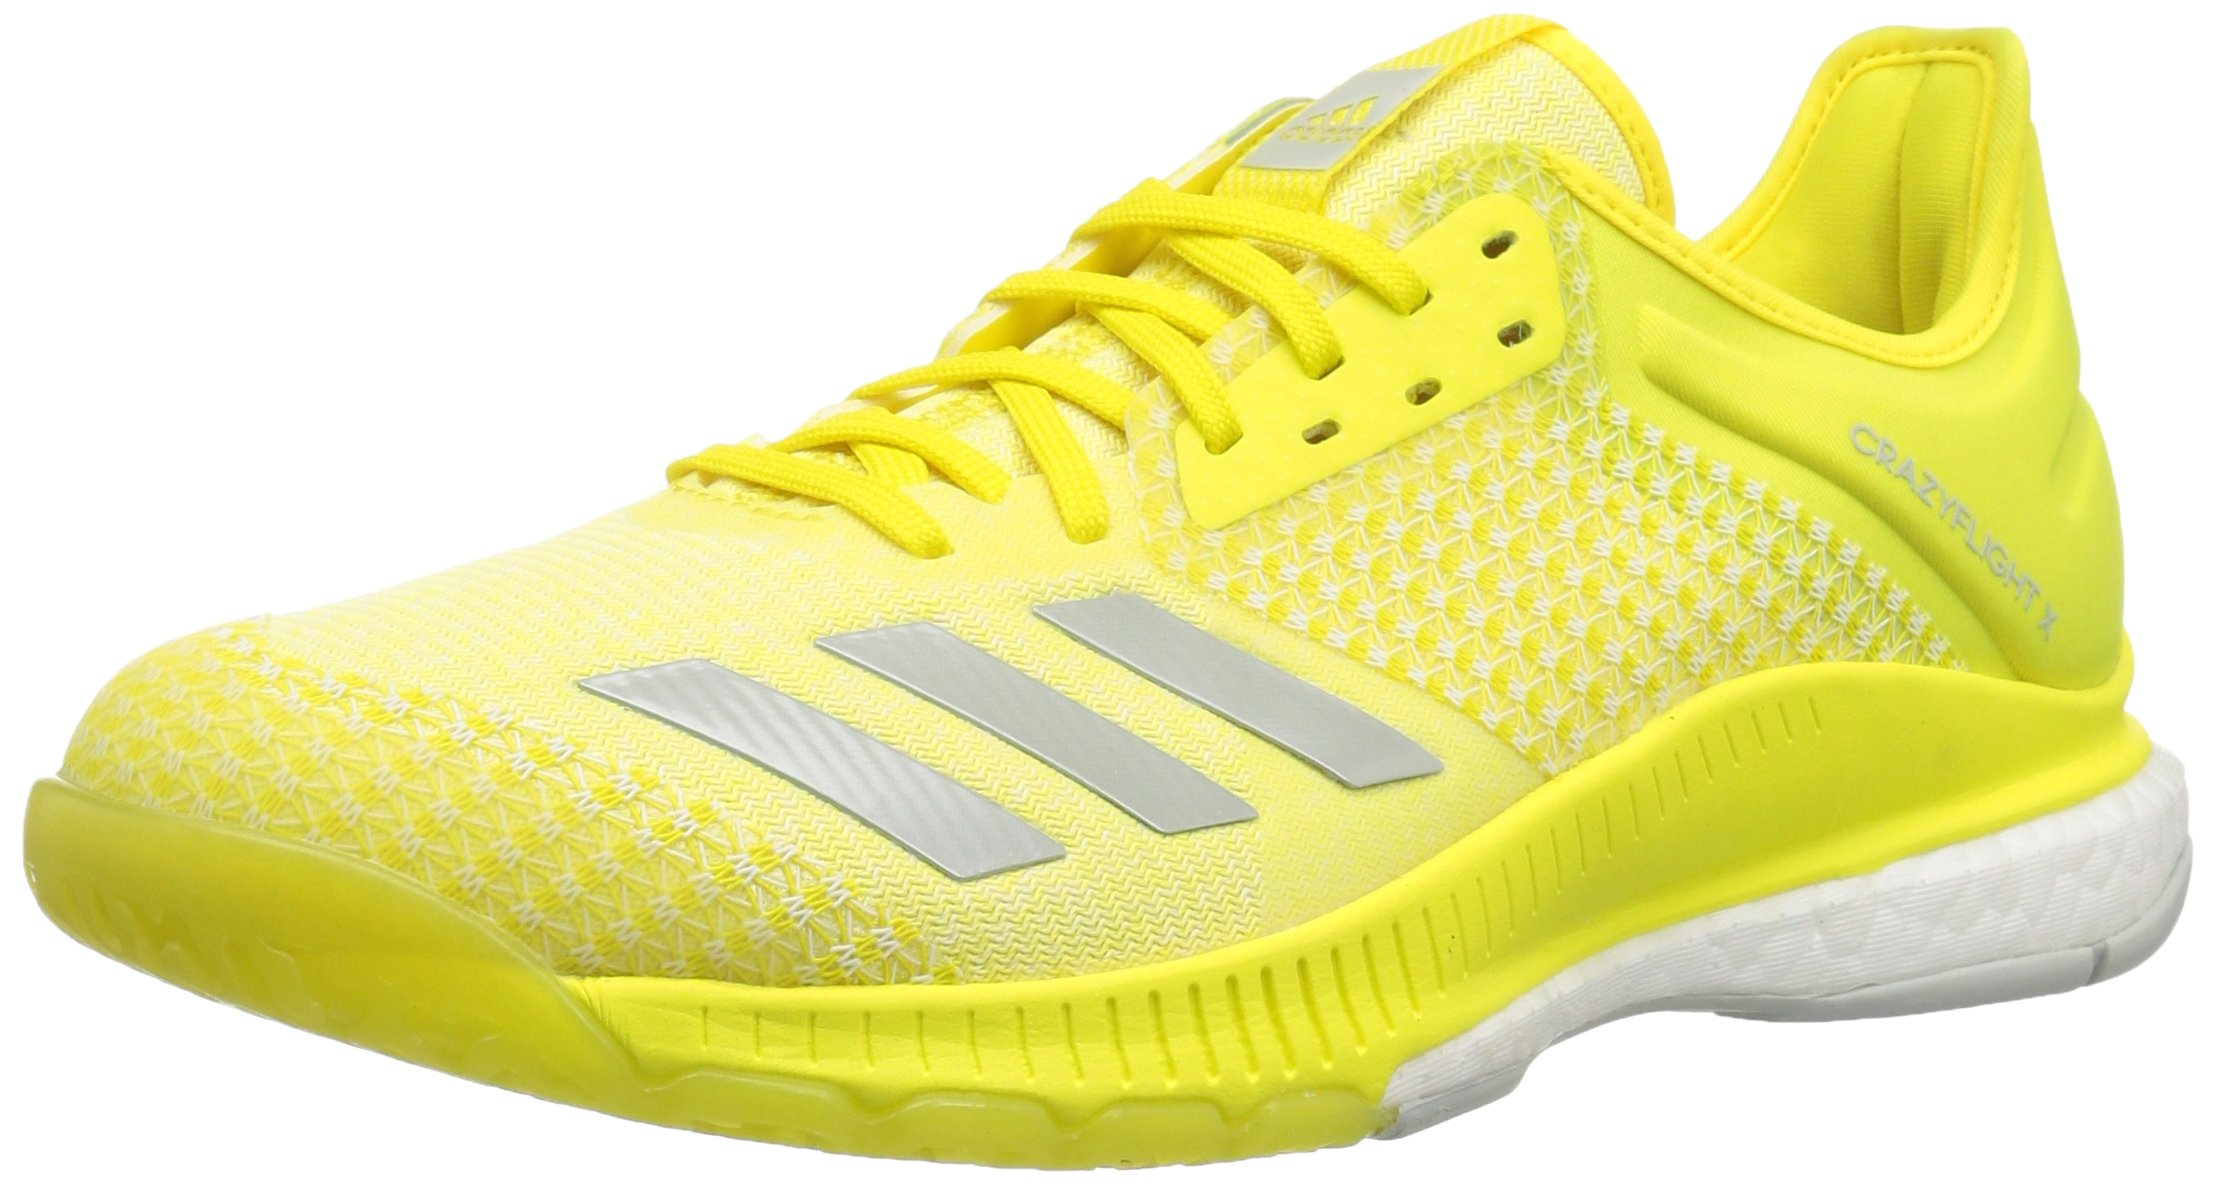 adidas Women's Crazyflight X 2 Volleyball Shoe Shock Yellow/ash Silver/White 5 M US